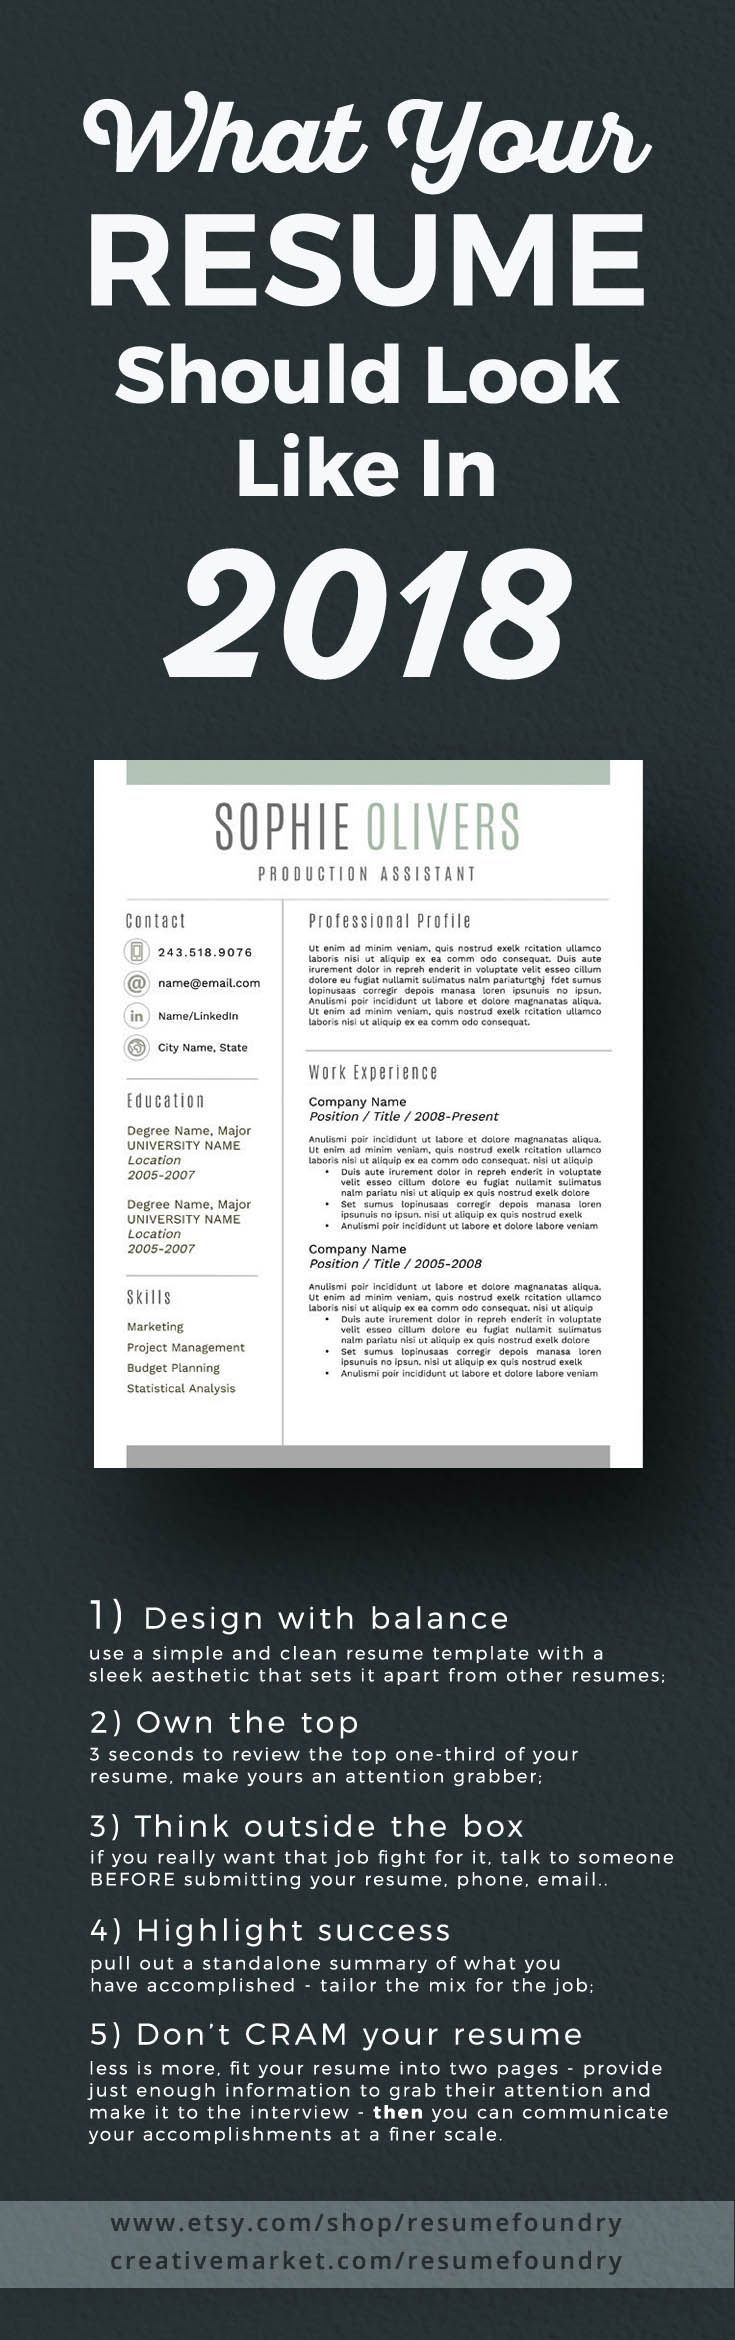 Modern Resume Template For Word, 1-3 Page Resume + Cover Letter + Reference  Page | Us Letter | Instant Download | Sophie | Success, Template And Texts